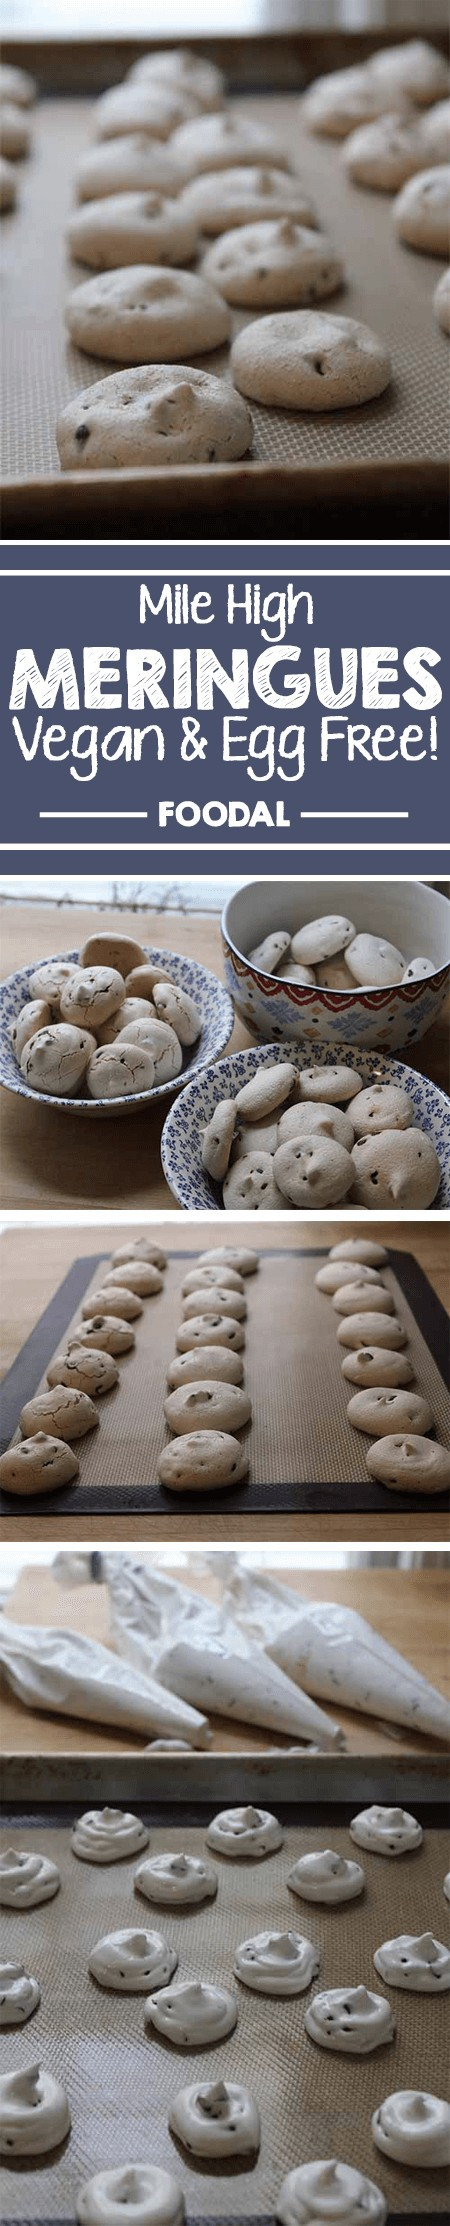 Meringues are not just for the egg lovers anymore! Thanks to aquafaba – the leftover cooking liquid from chickpeas – light and airy meringue cookies are possible without the use of egg whites. Follow our recipe for easy chocolate chip meringues that are a tasty treat at any time – especially for vegans or the food allergy prone! https://foodal.com/recipes/desserts/vegan-eggless-meringues/